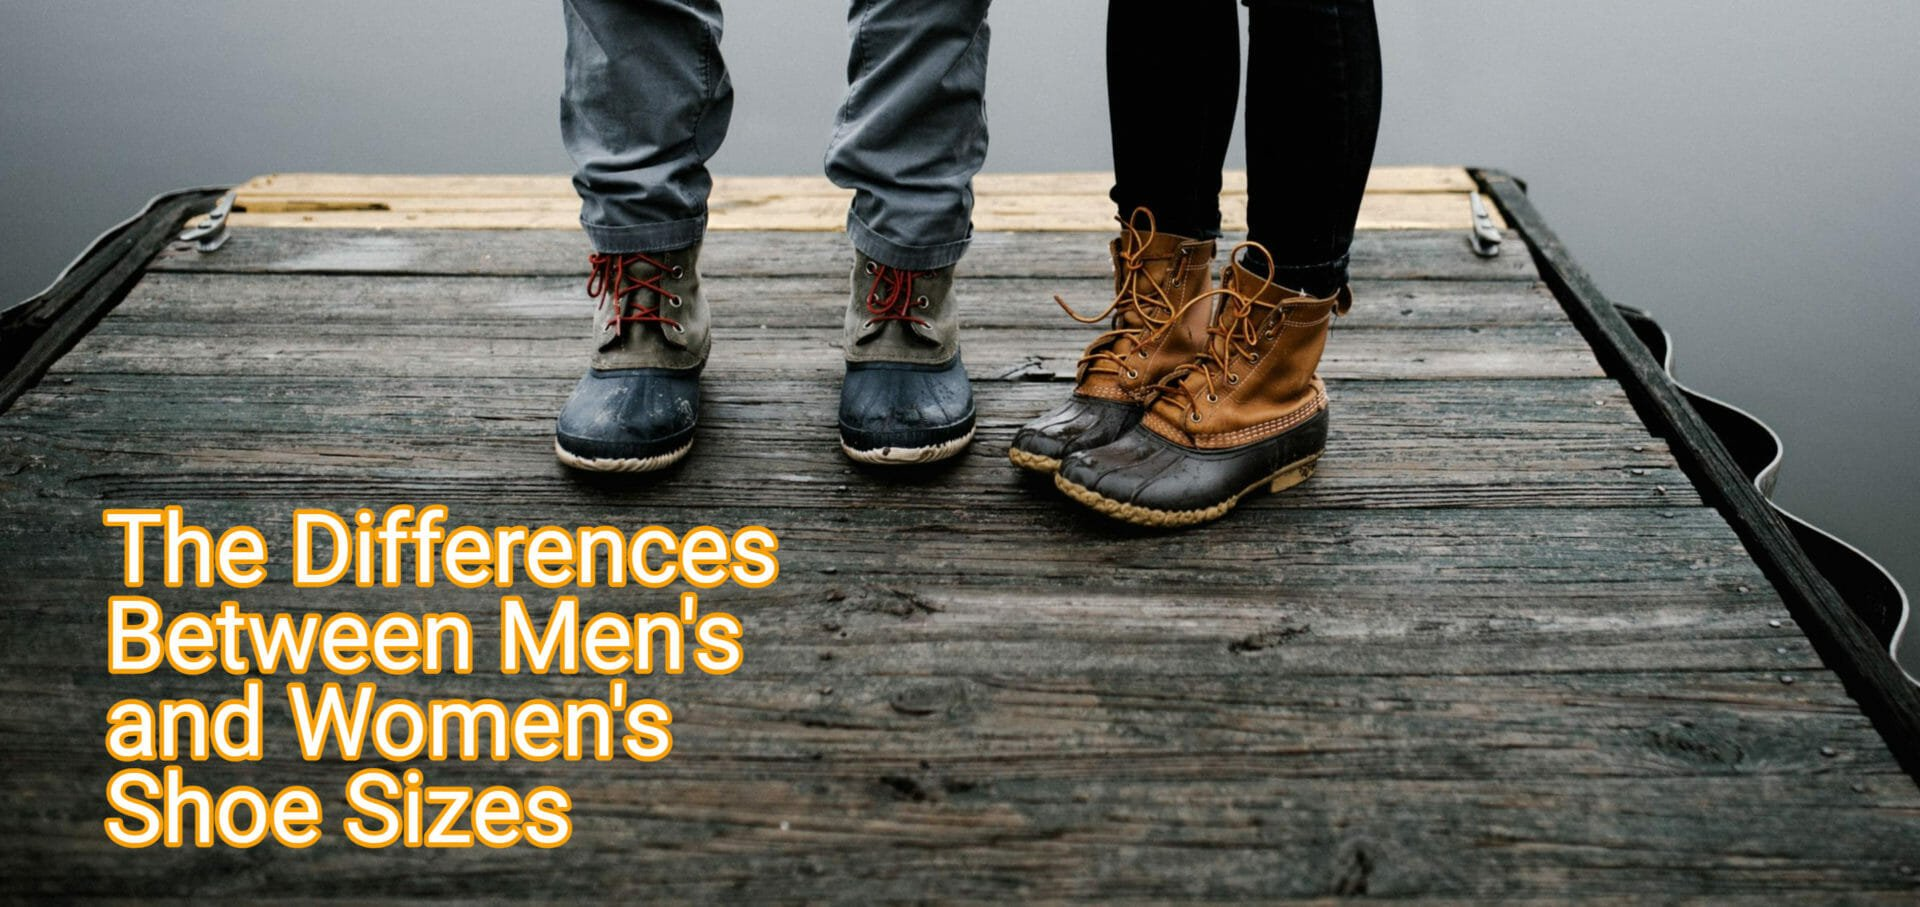 Differences Between Men's and Women's Shoe Sizes